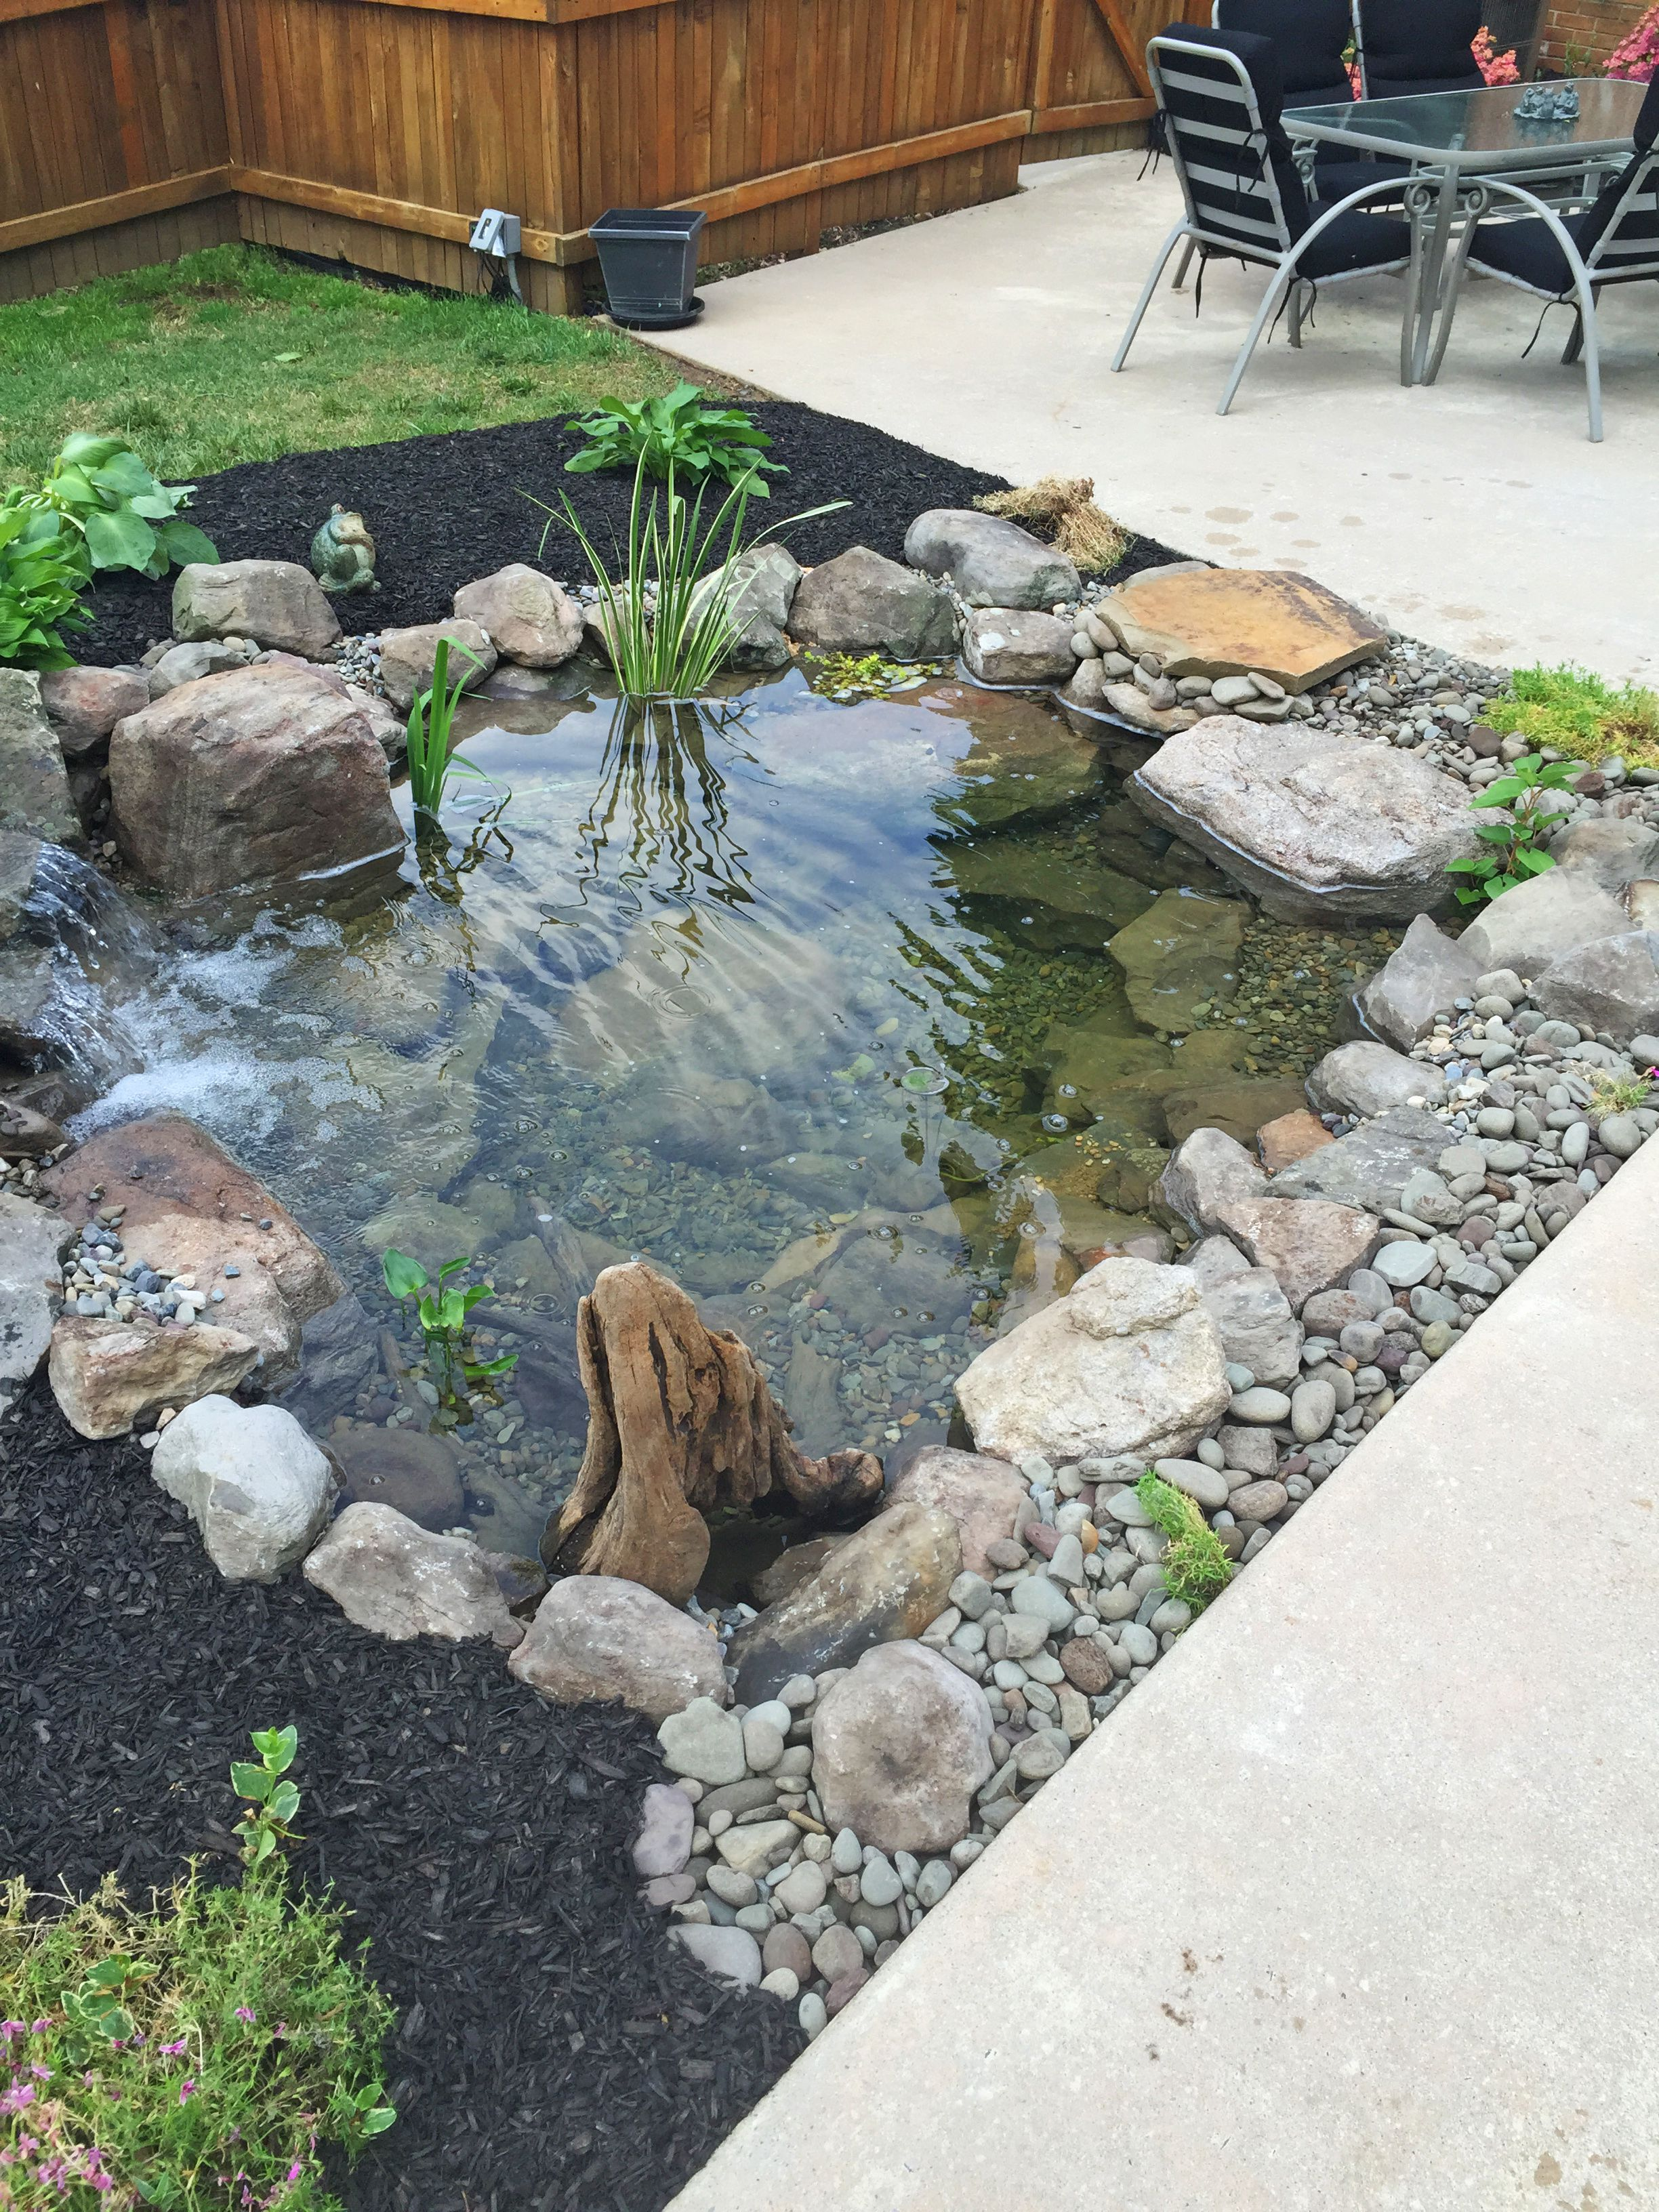 Backyard fish pond waterfall koi water garden waterscapes for Koi pond design pictures